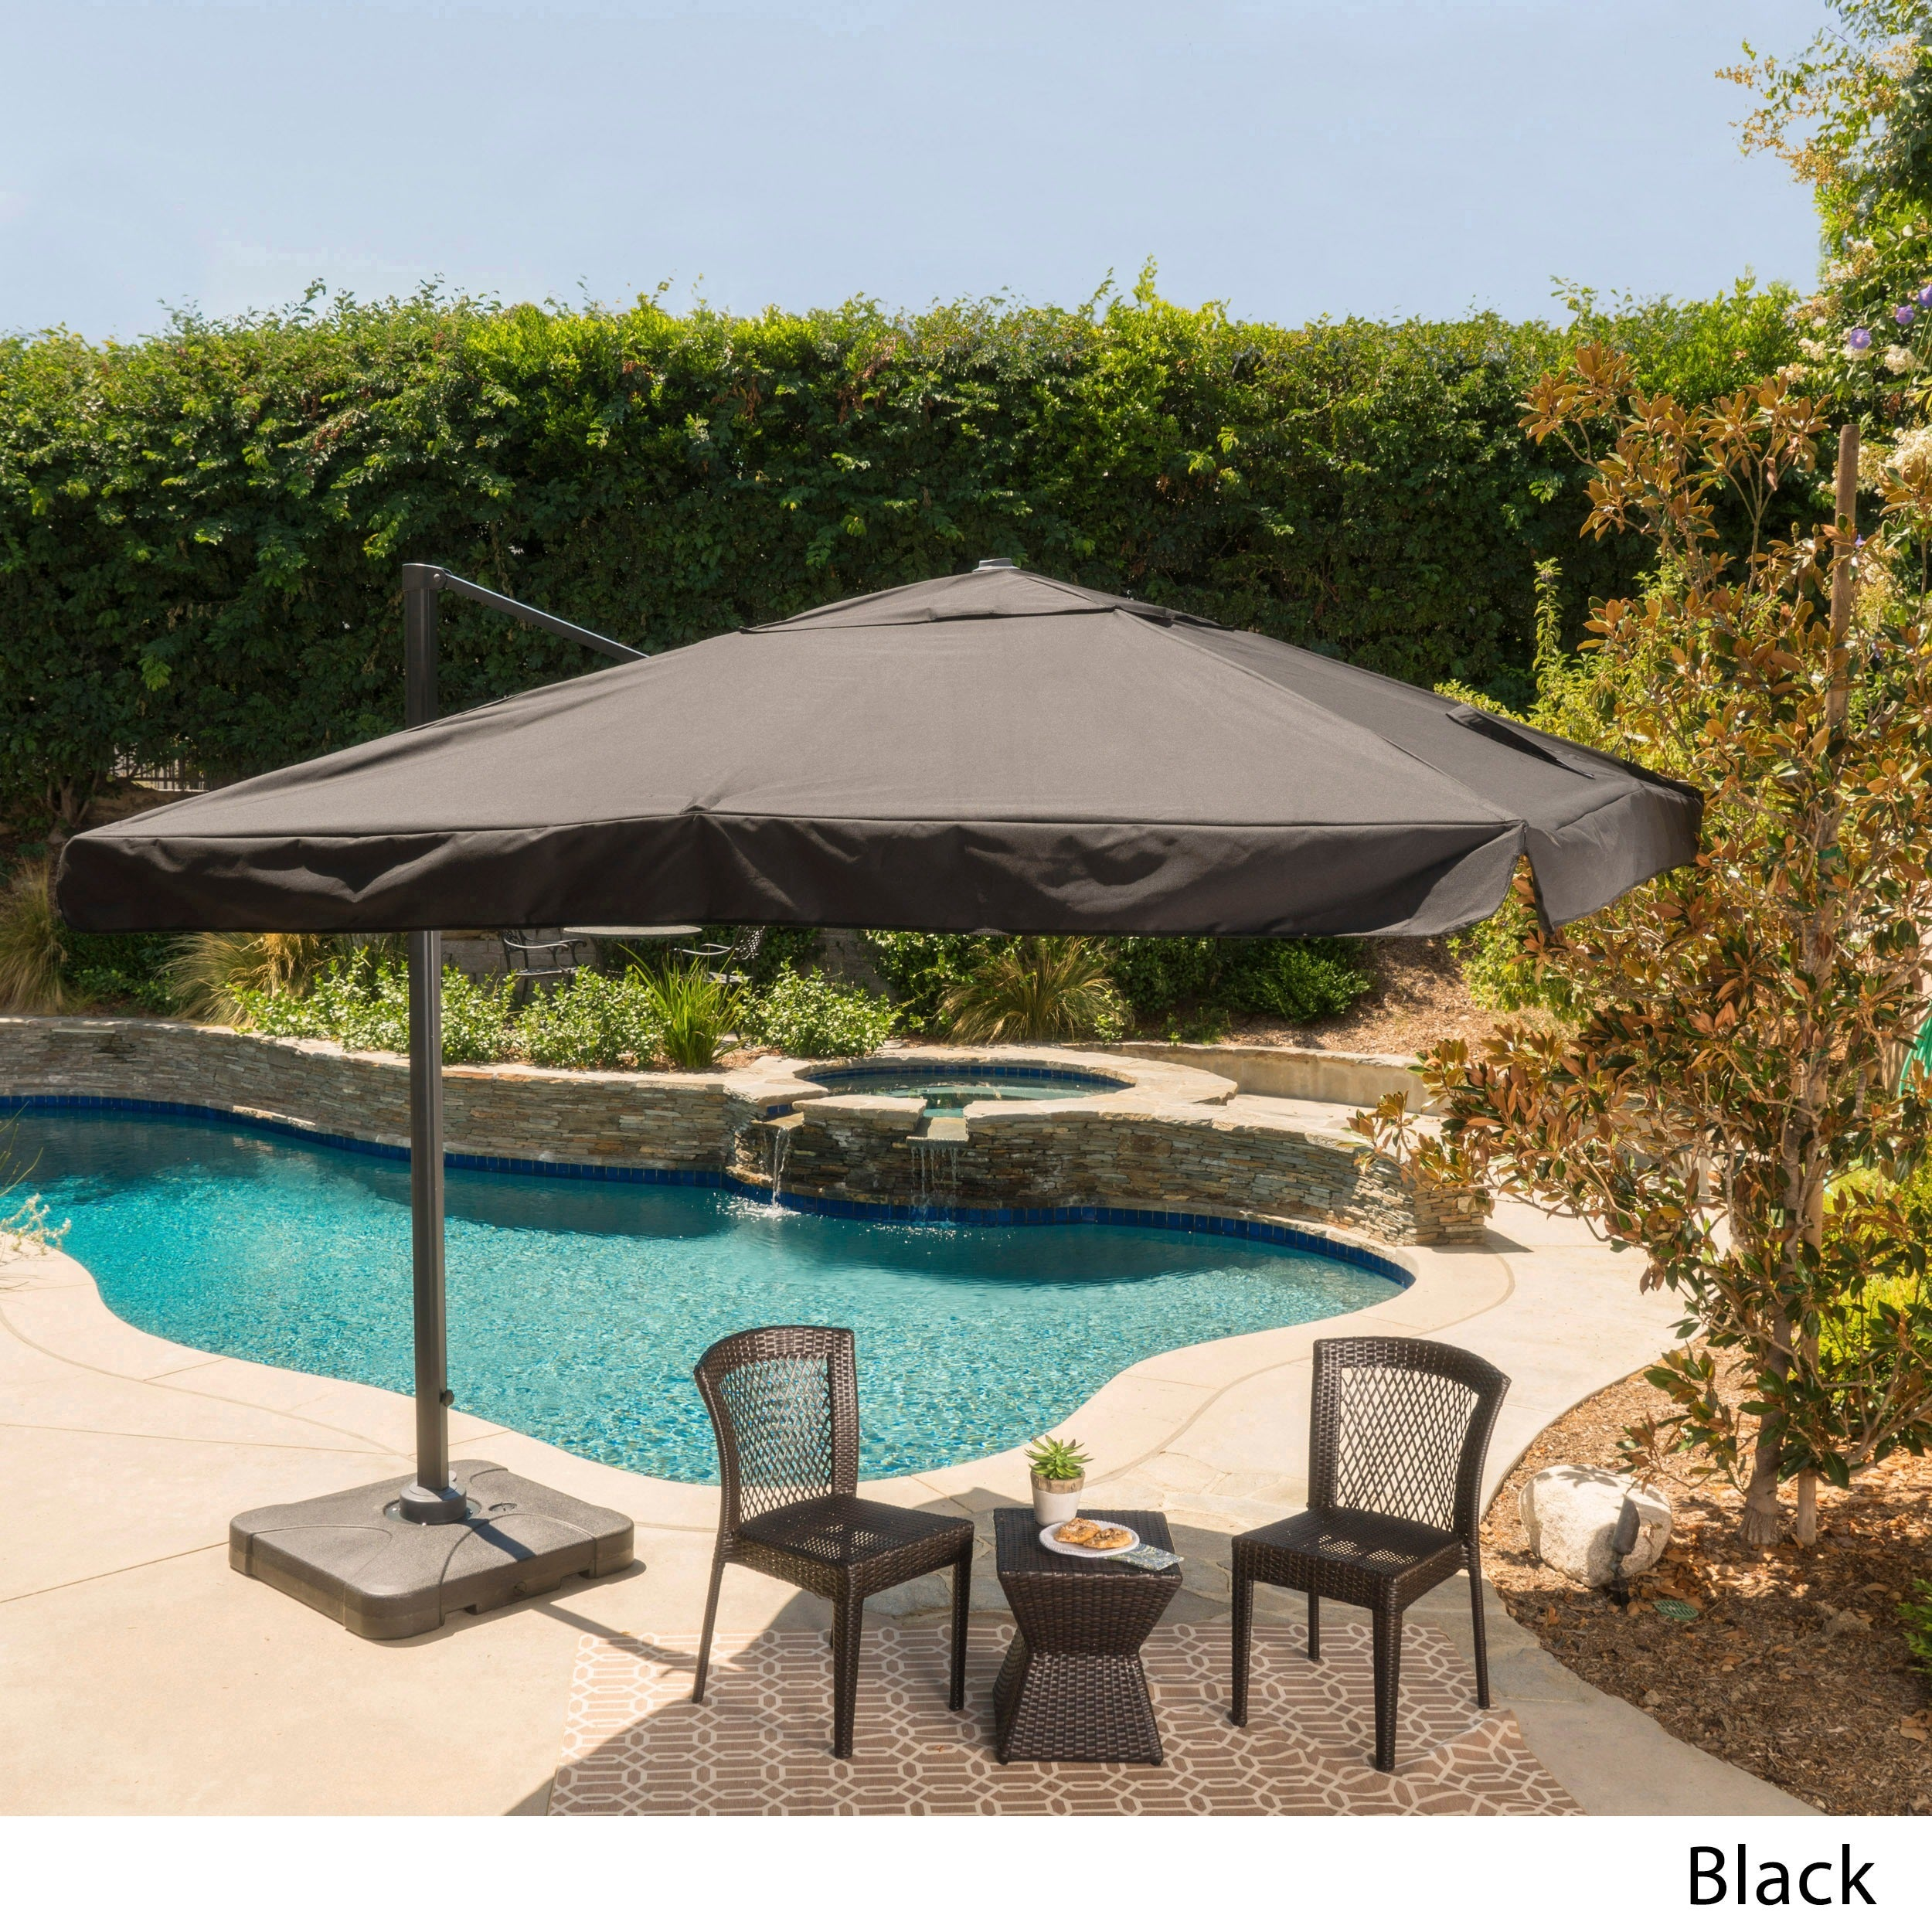 Outdoor Merida 9 8 Foot Canopy Umbrella With Base By Christopher Knight Home On Free Shipping Today 10591217